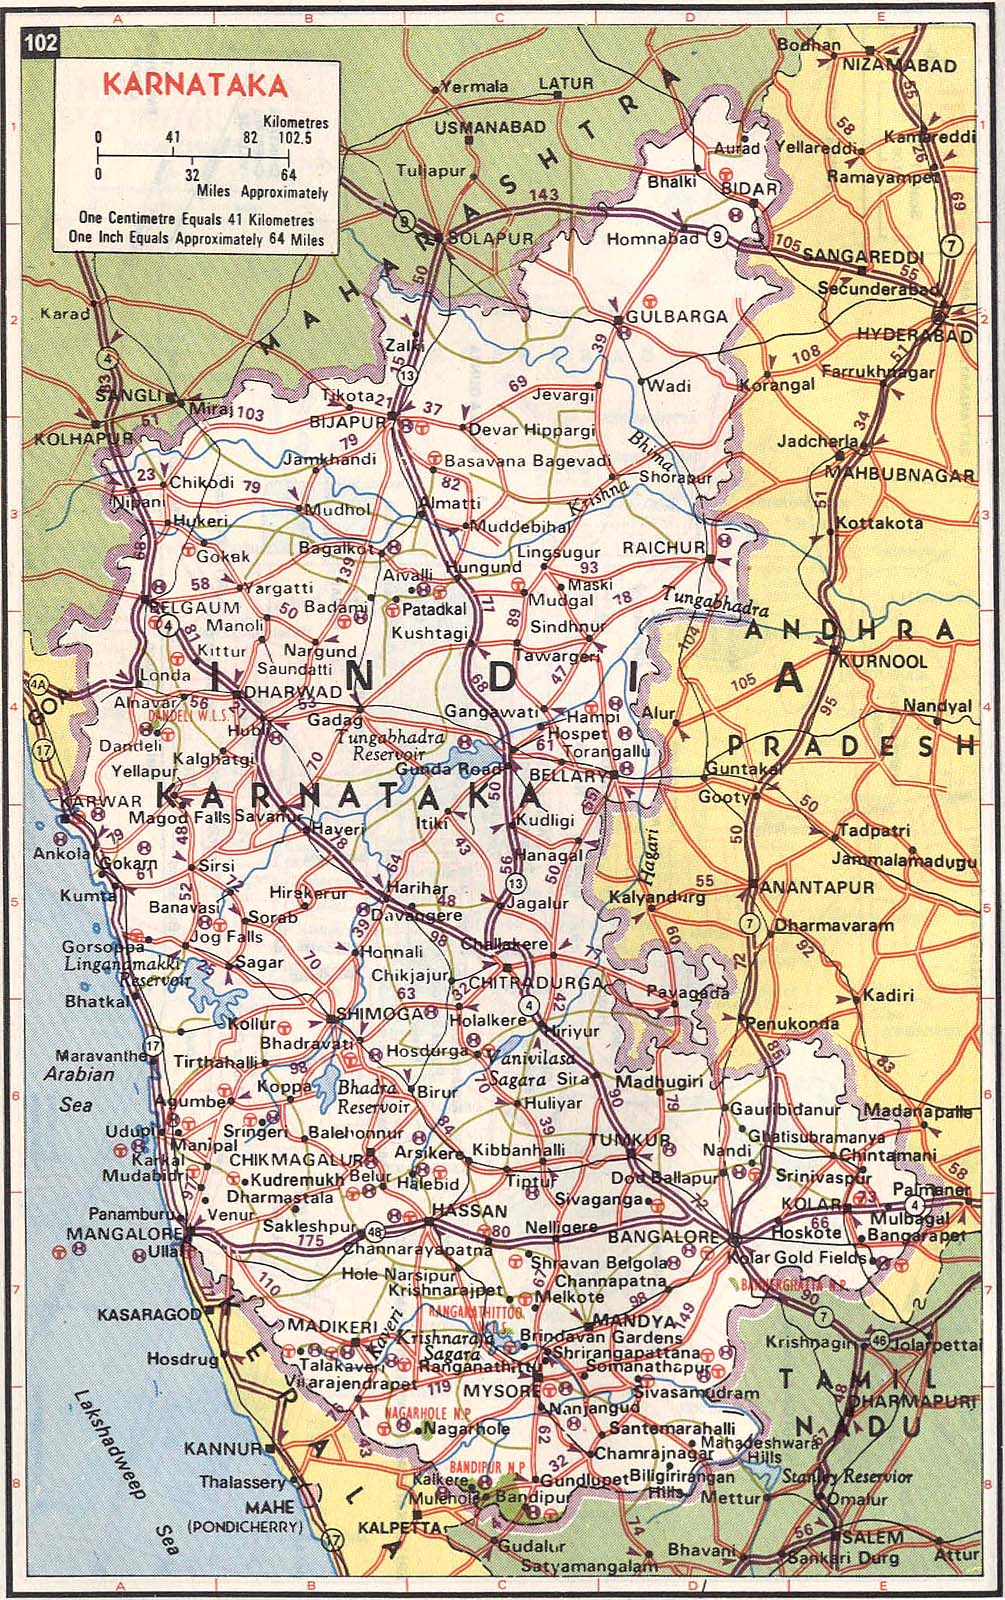 karnataka state road map Karnataka India Road Map Karnataka India Mappery karnataka state road map